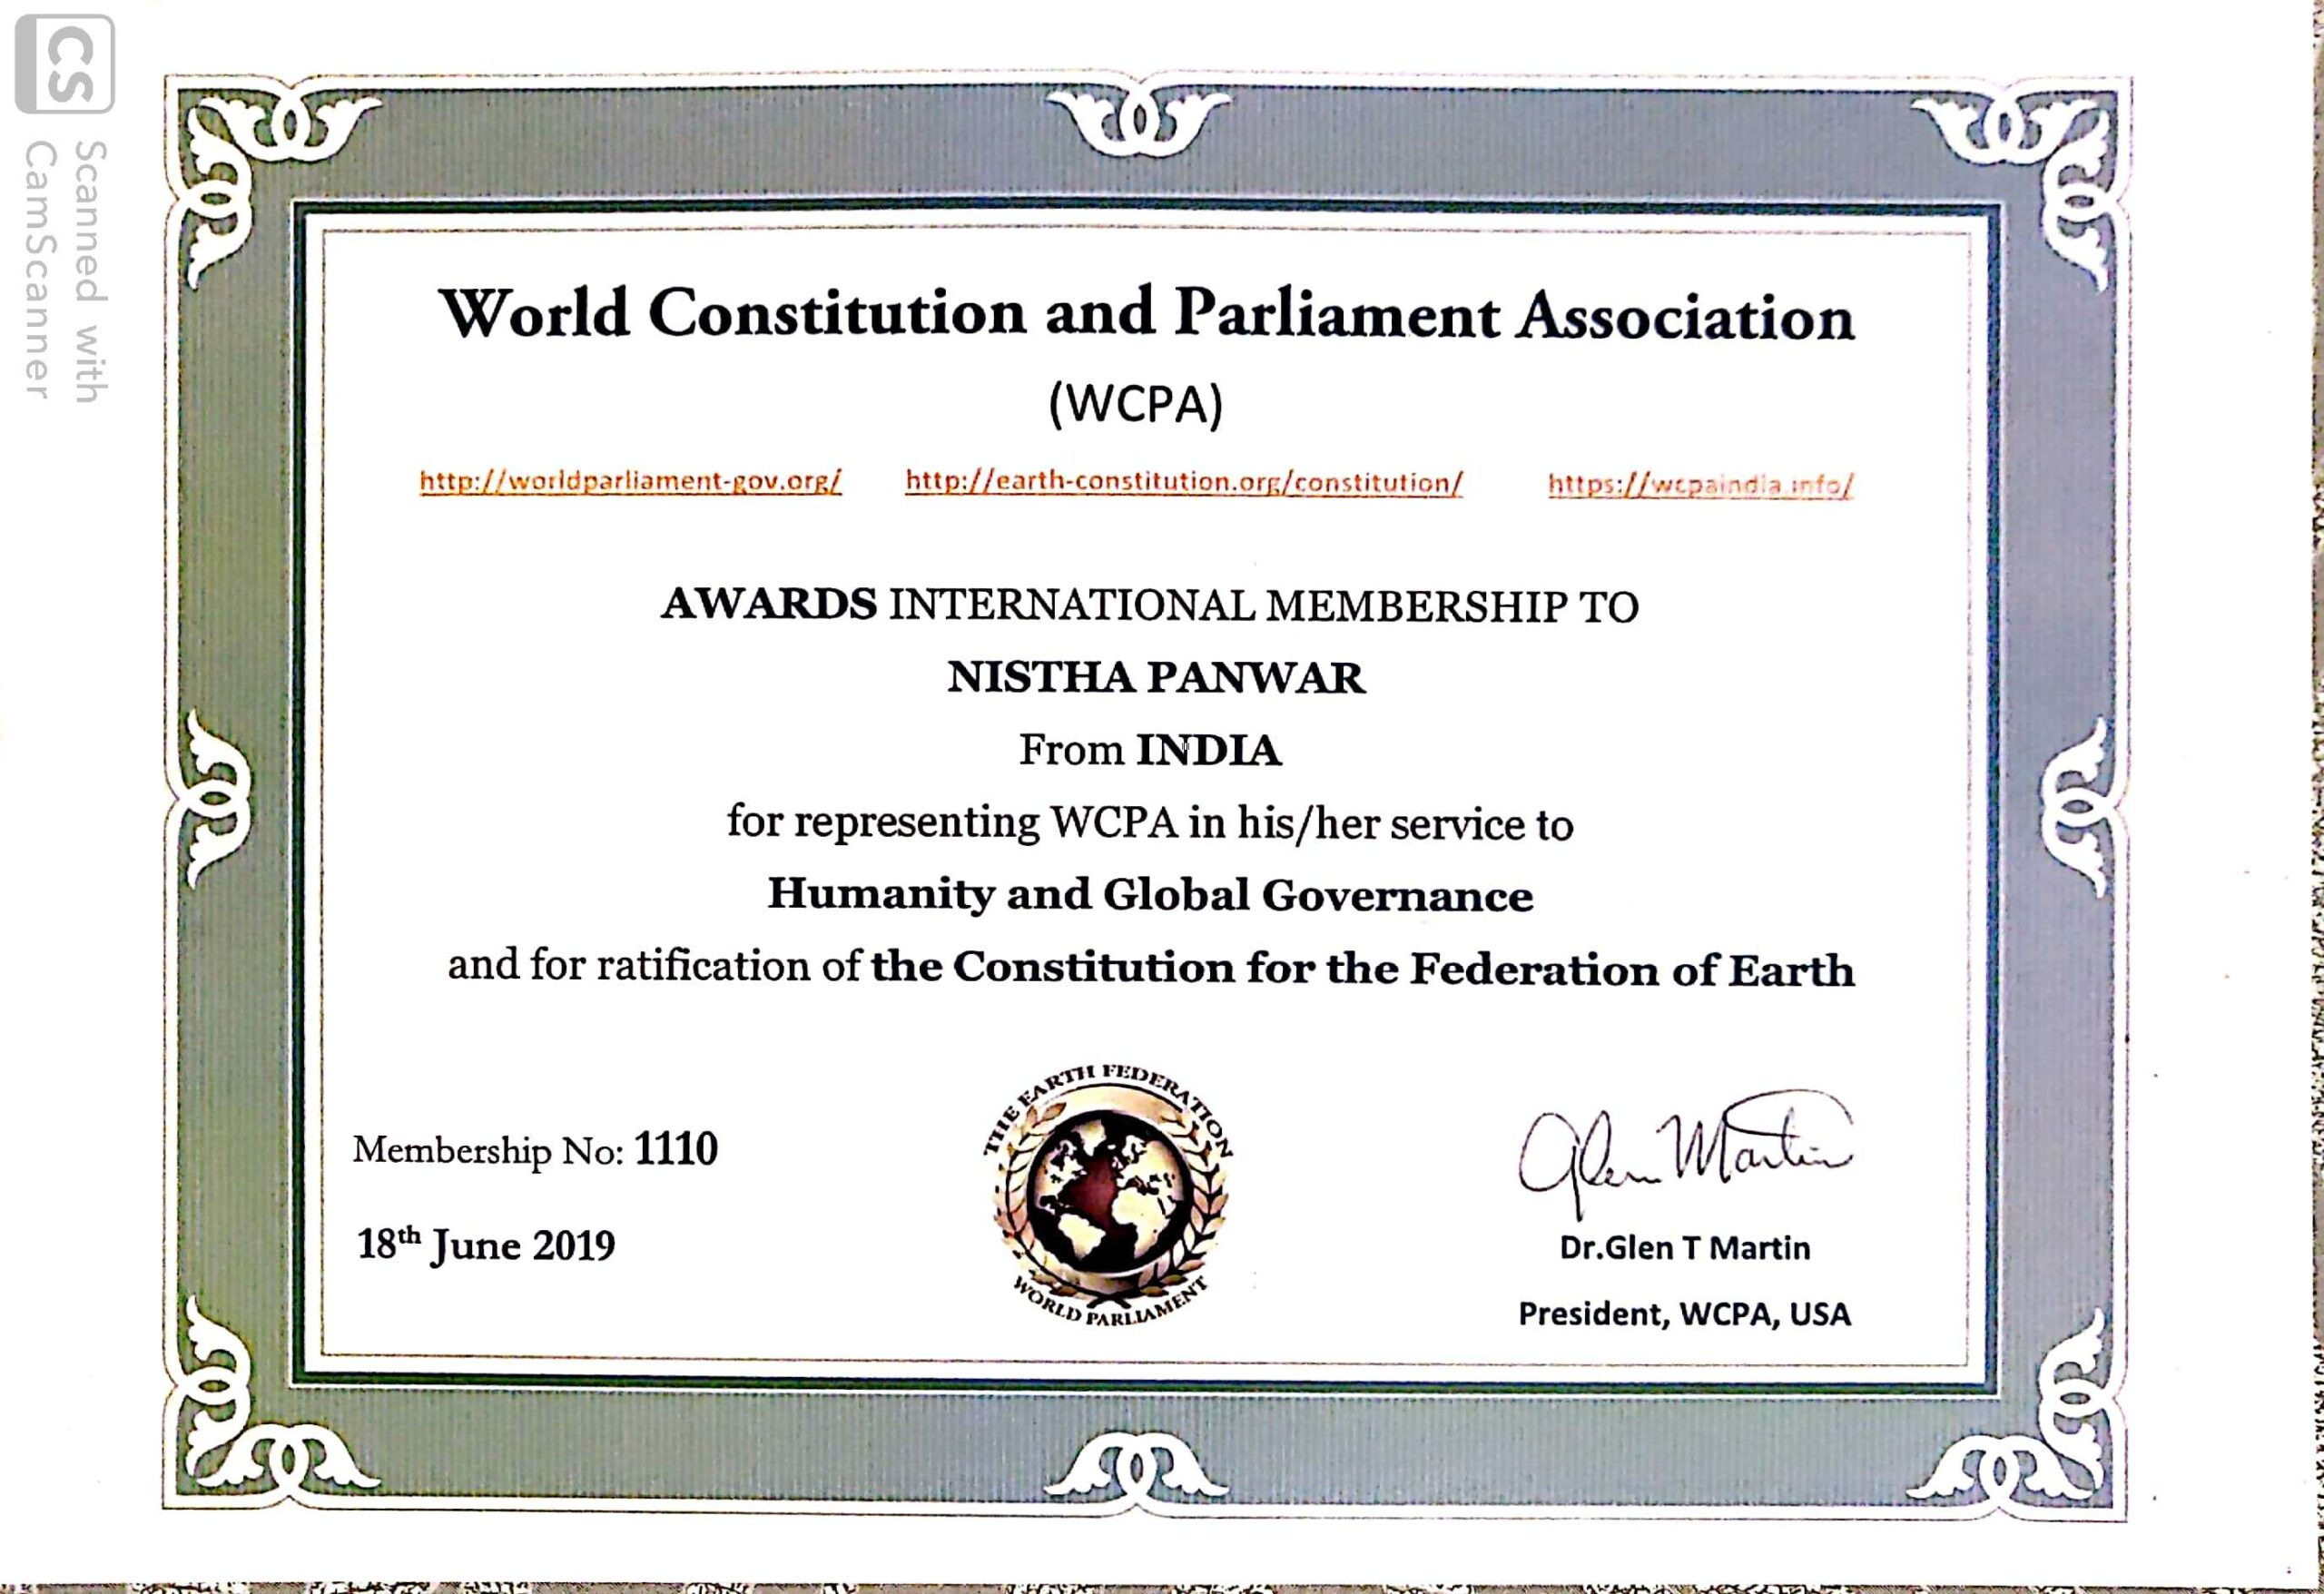 MUIT Noida: Law Student Certificate - World Contitution And Parliament Association Certificate